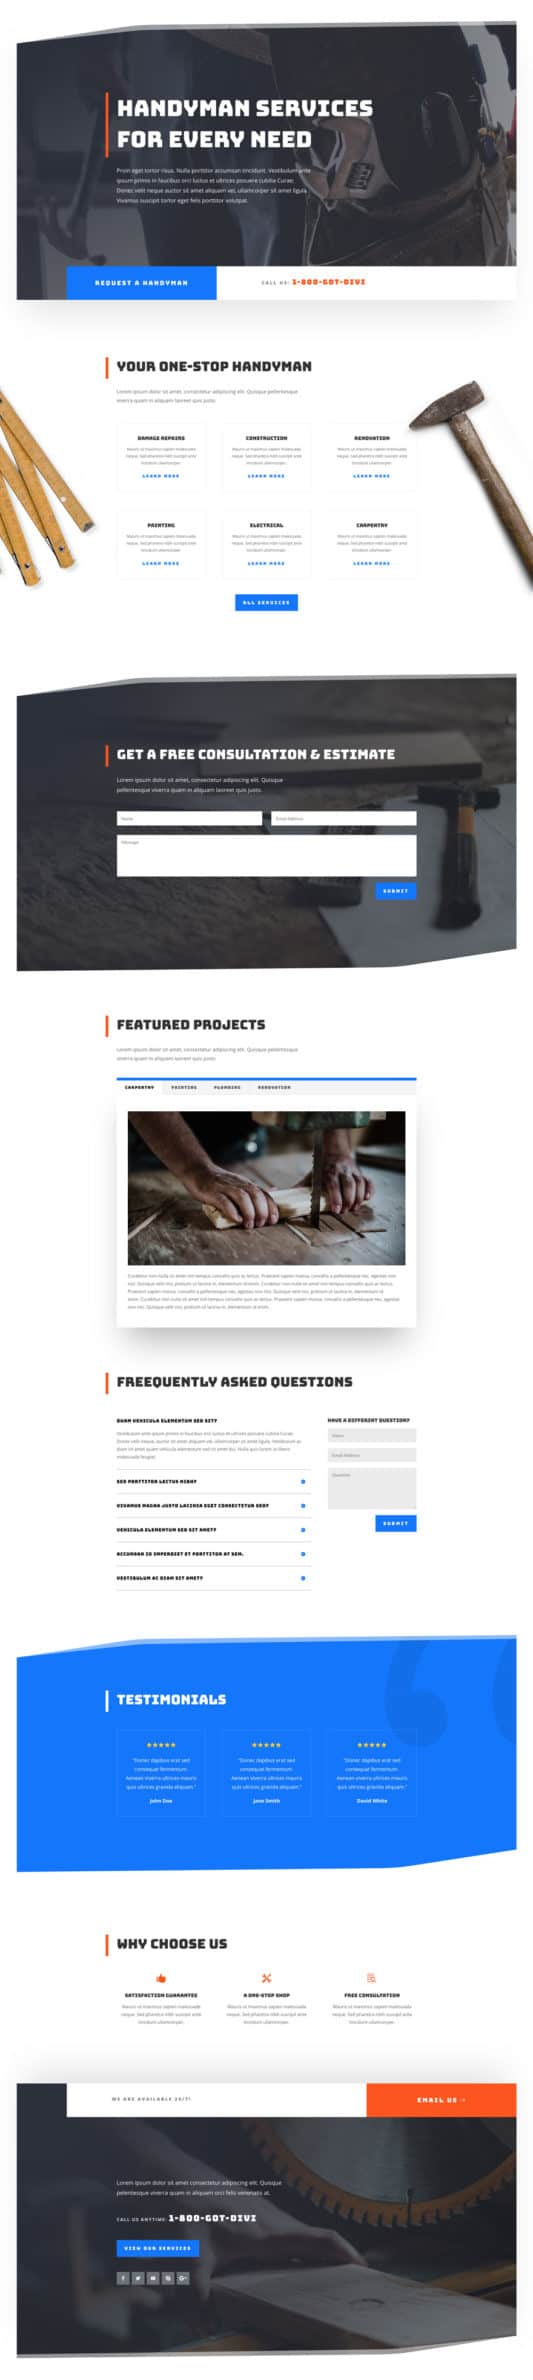 Handyman Web Design 5